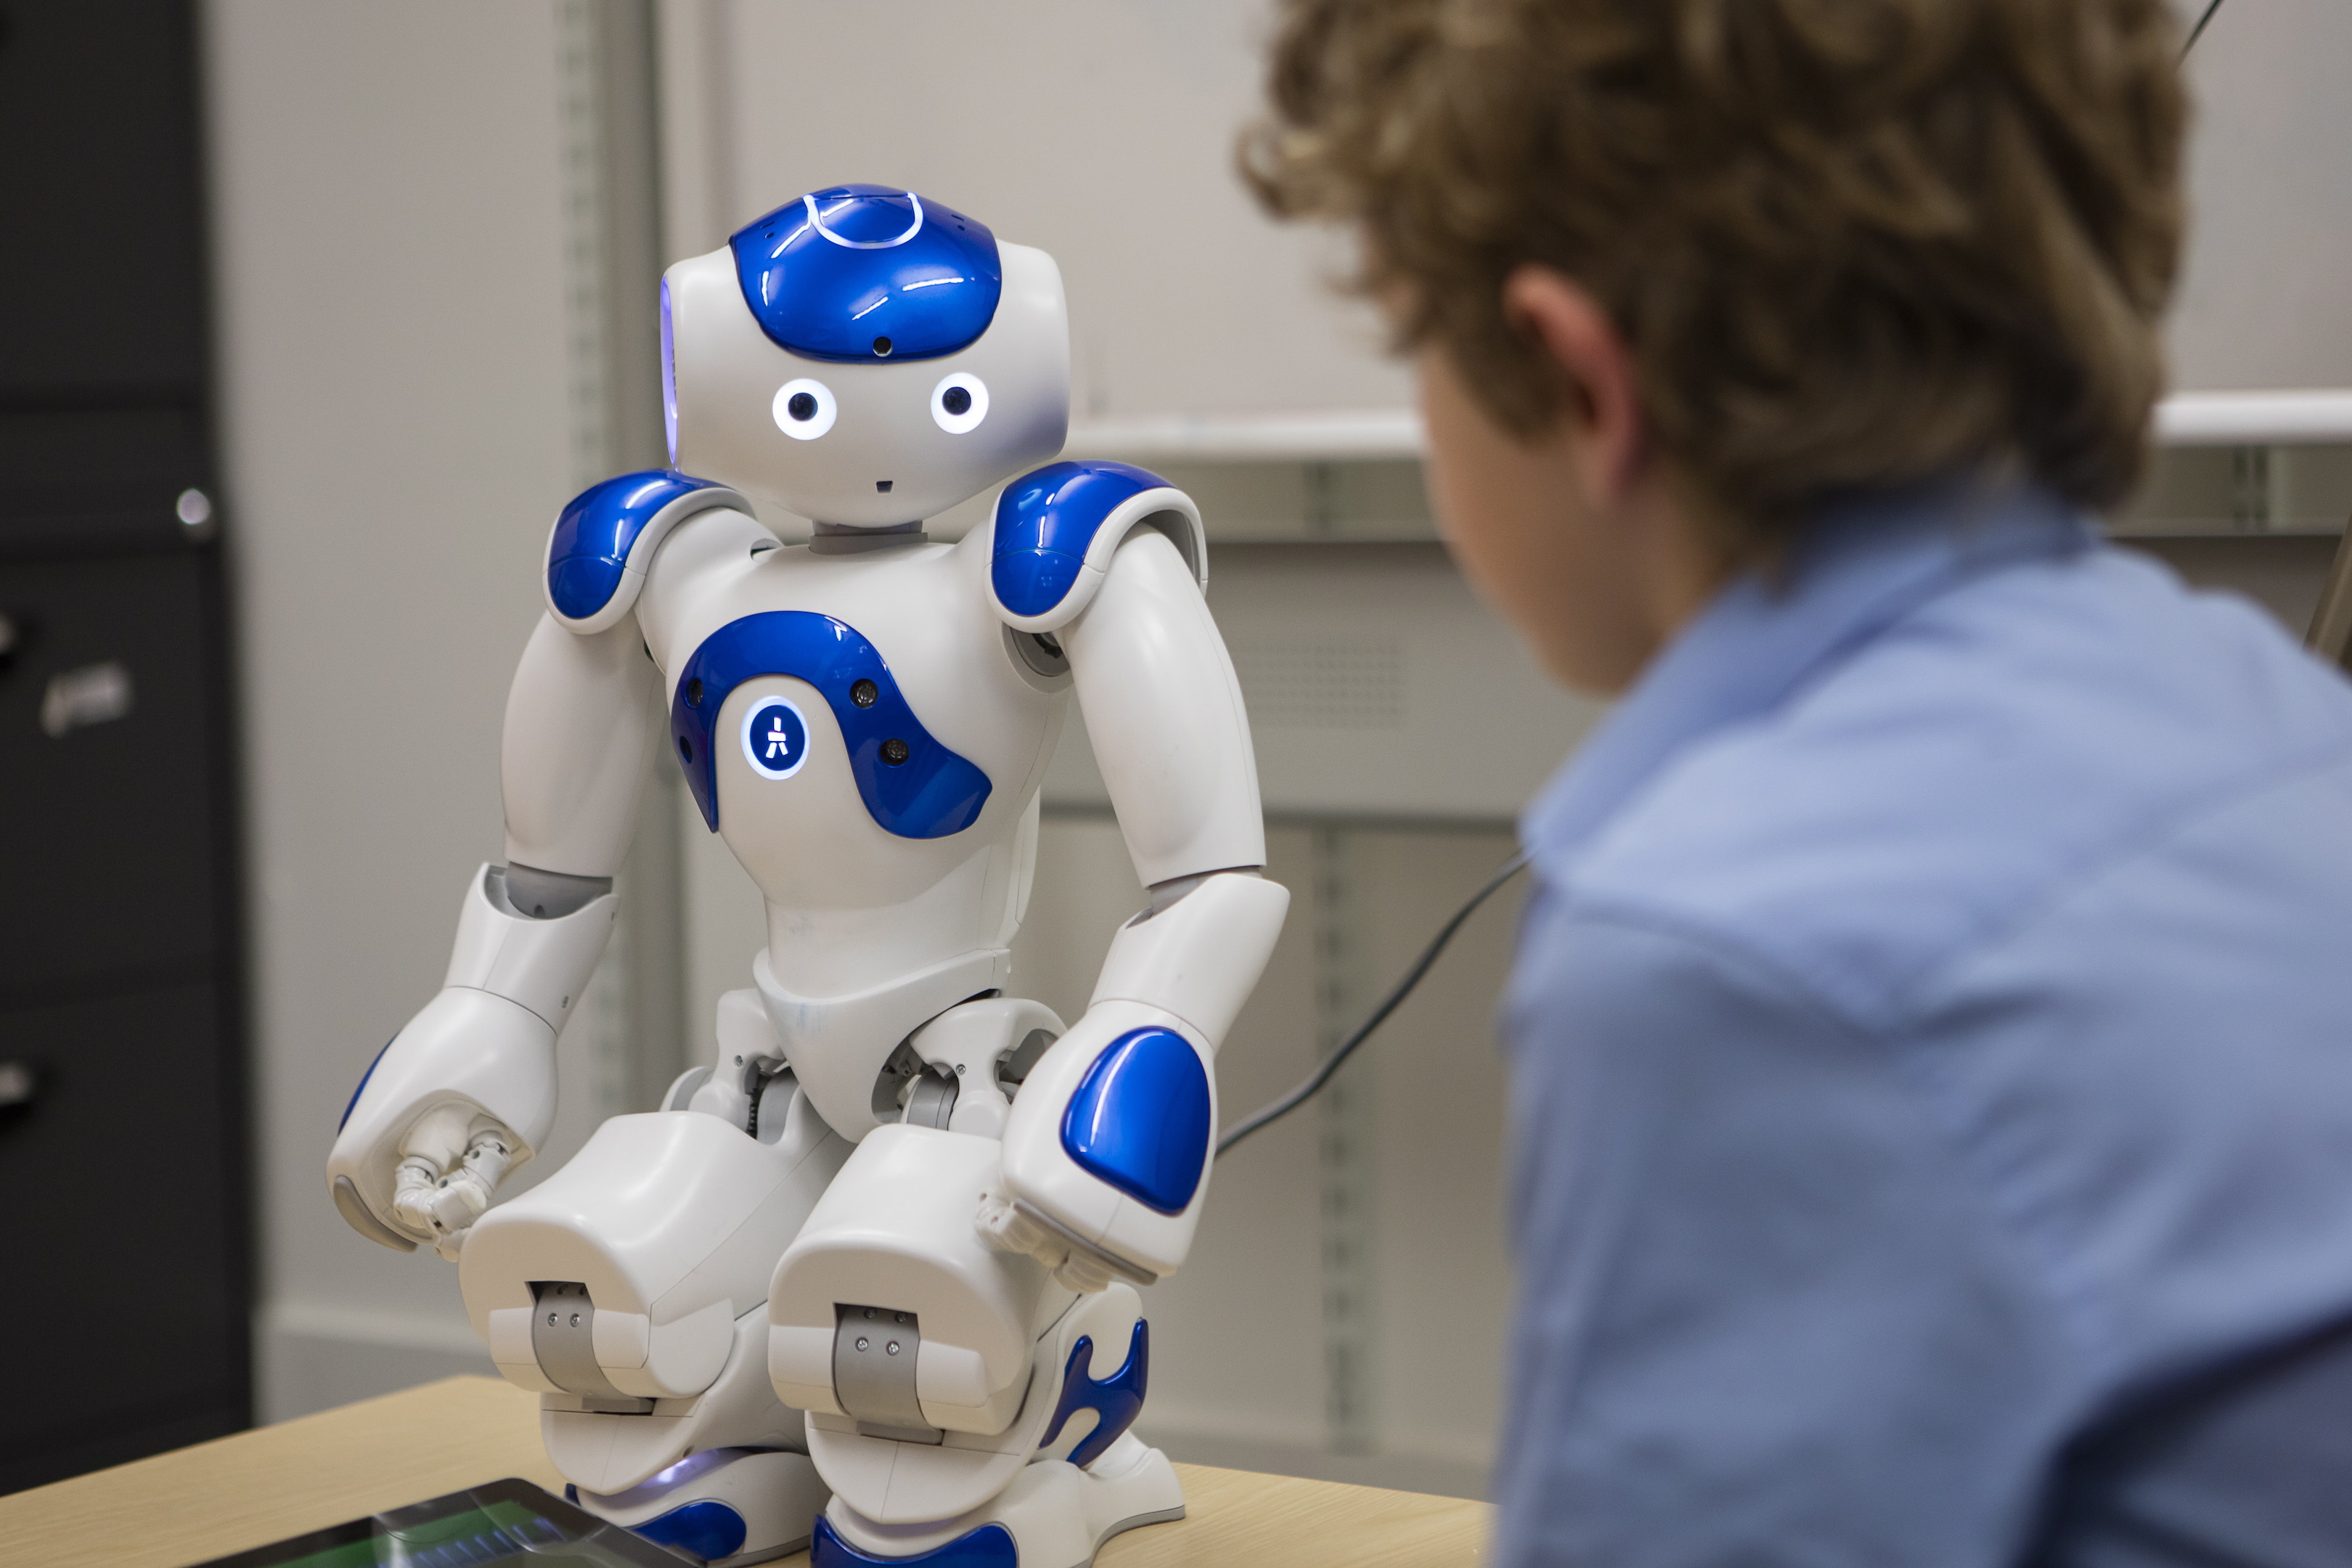 Children Robot Robots Can Easily Influence Children Help Boost Education Earth